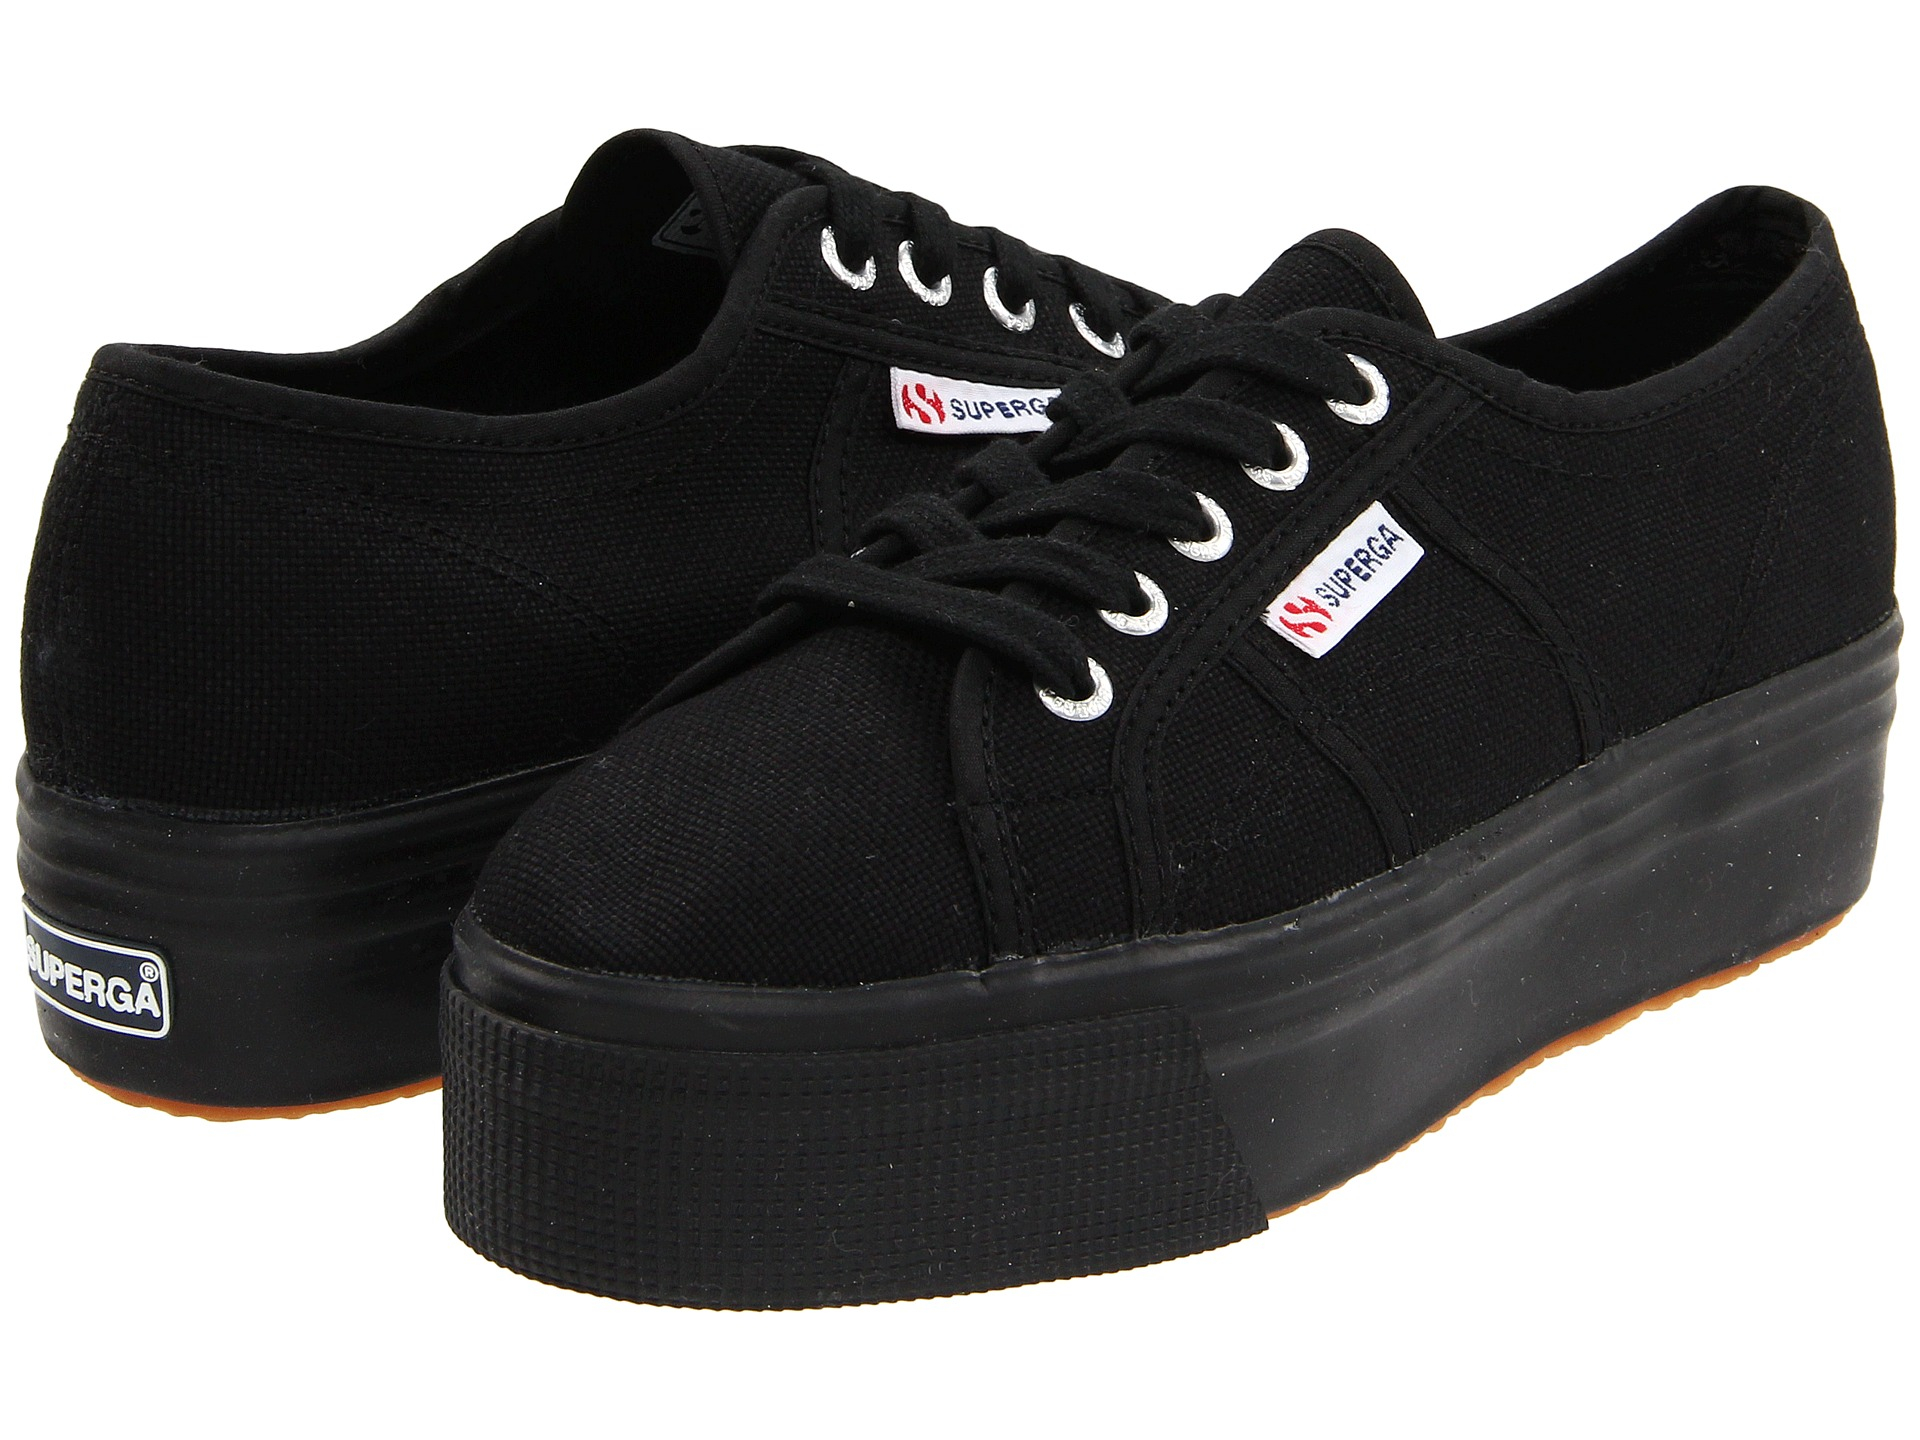 9b460b7a93f Lyst - Superga 2790 Acotw Linea Up And Down in Black